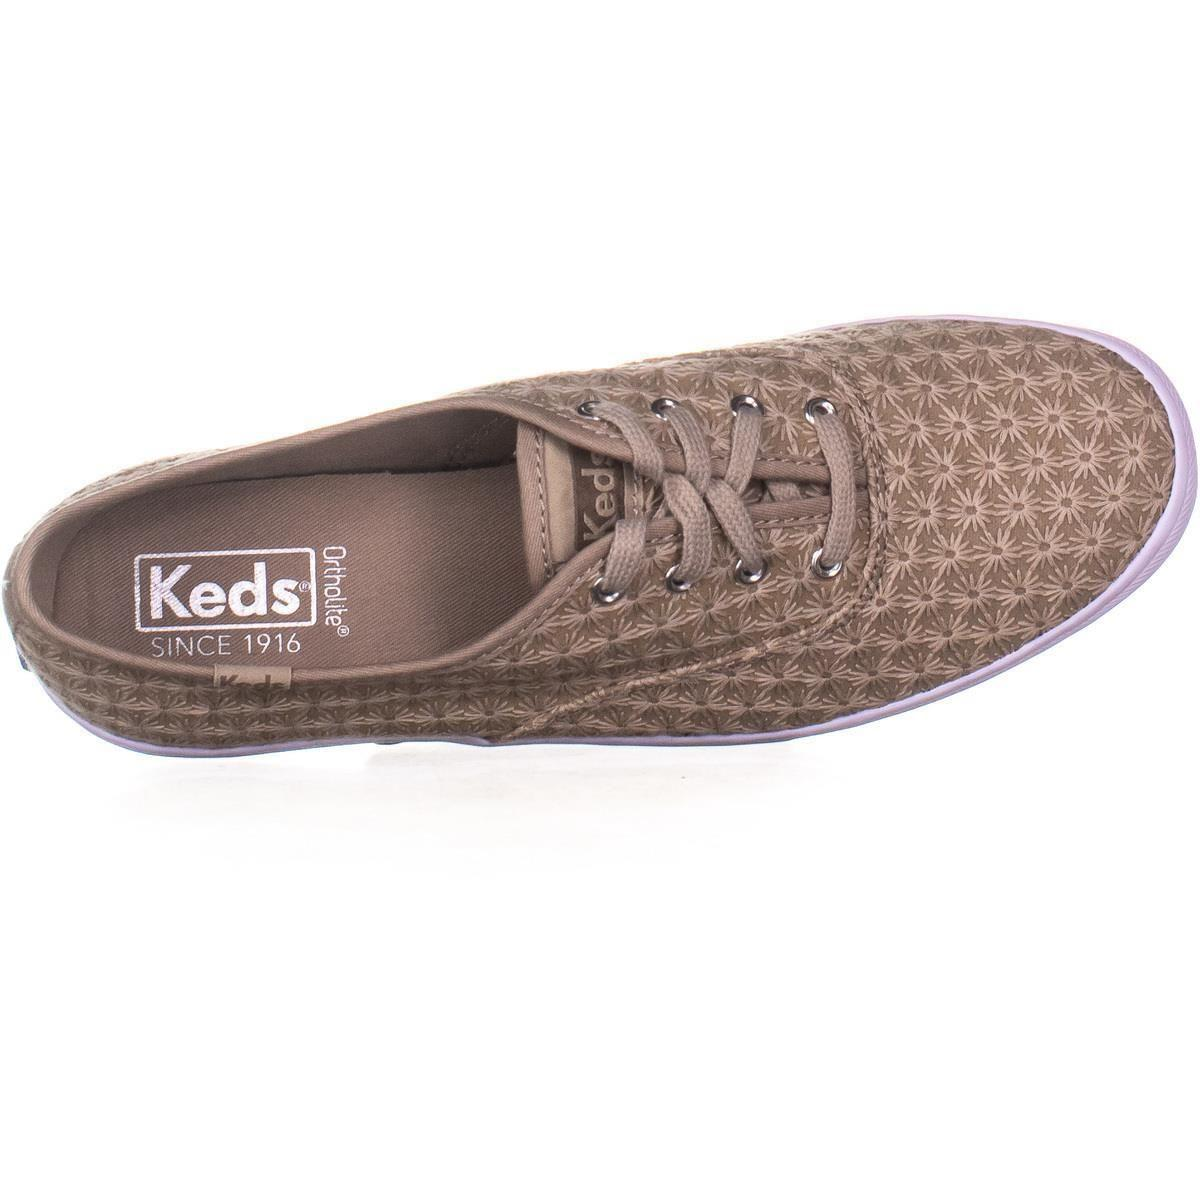 035203ac698 Keds - Multicolor Champion Mini Daisy Fashion Sneaker - Lyst. View  fullscreen